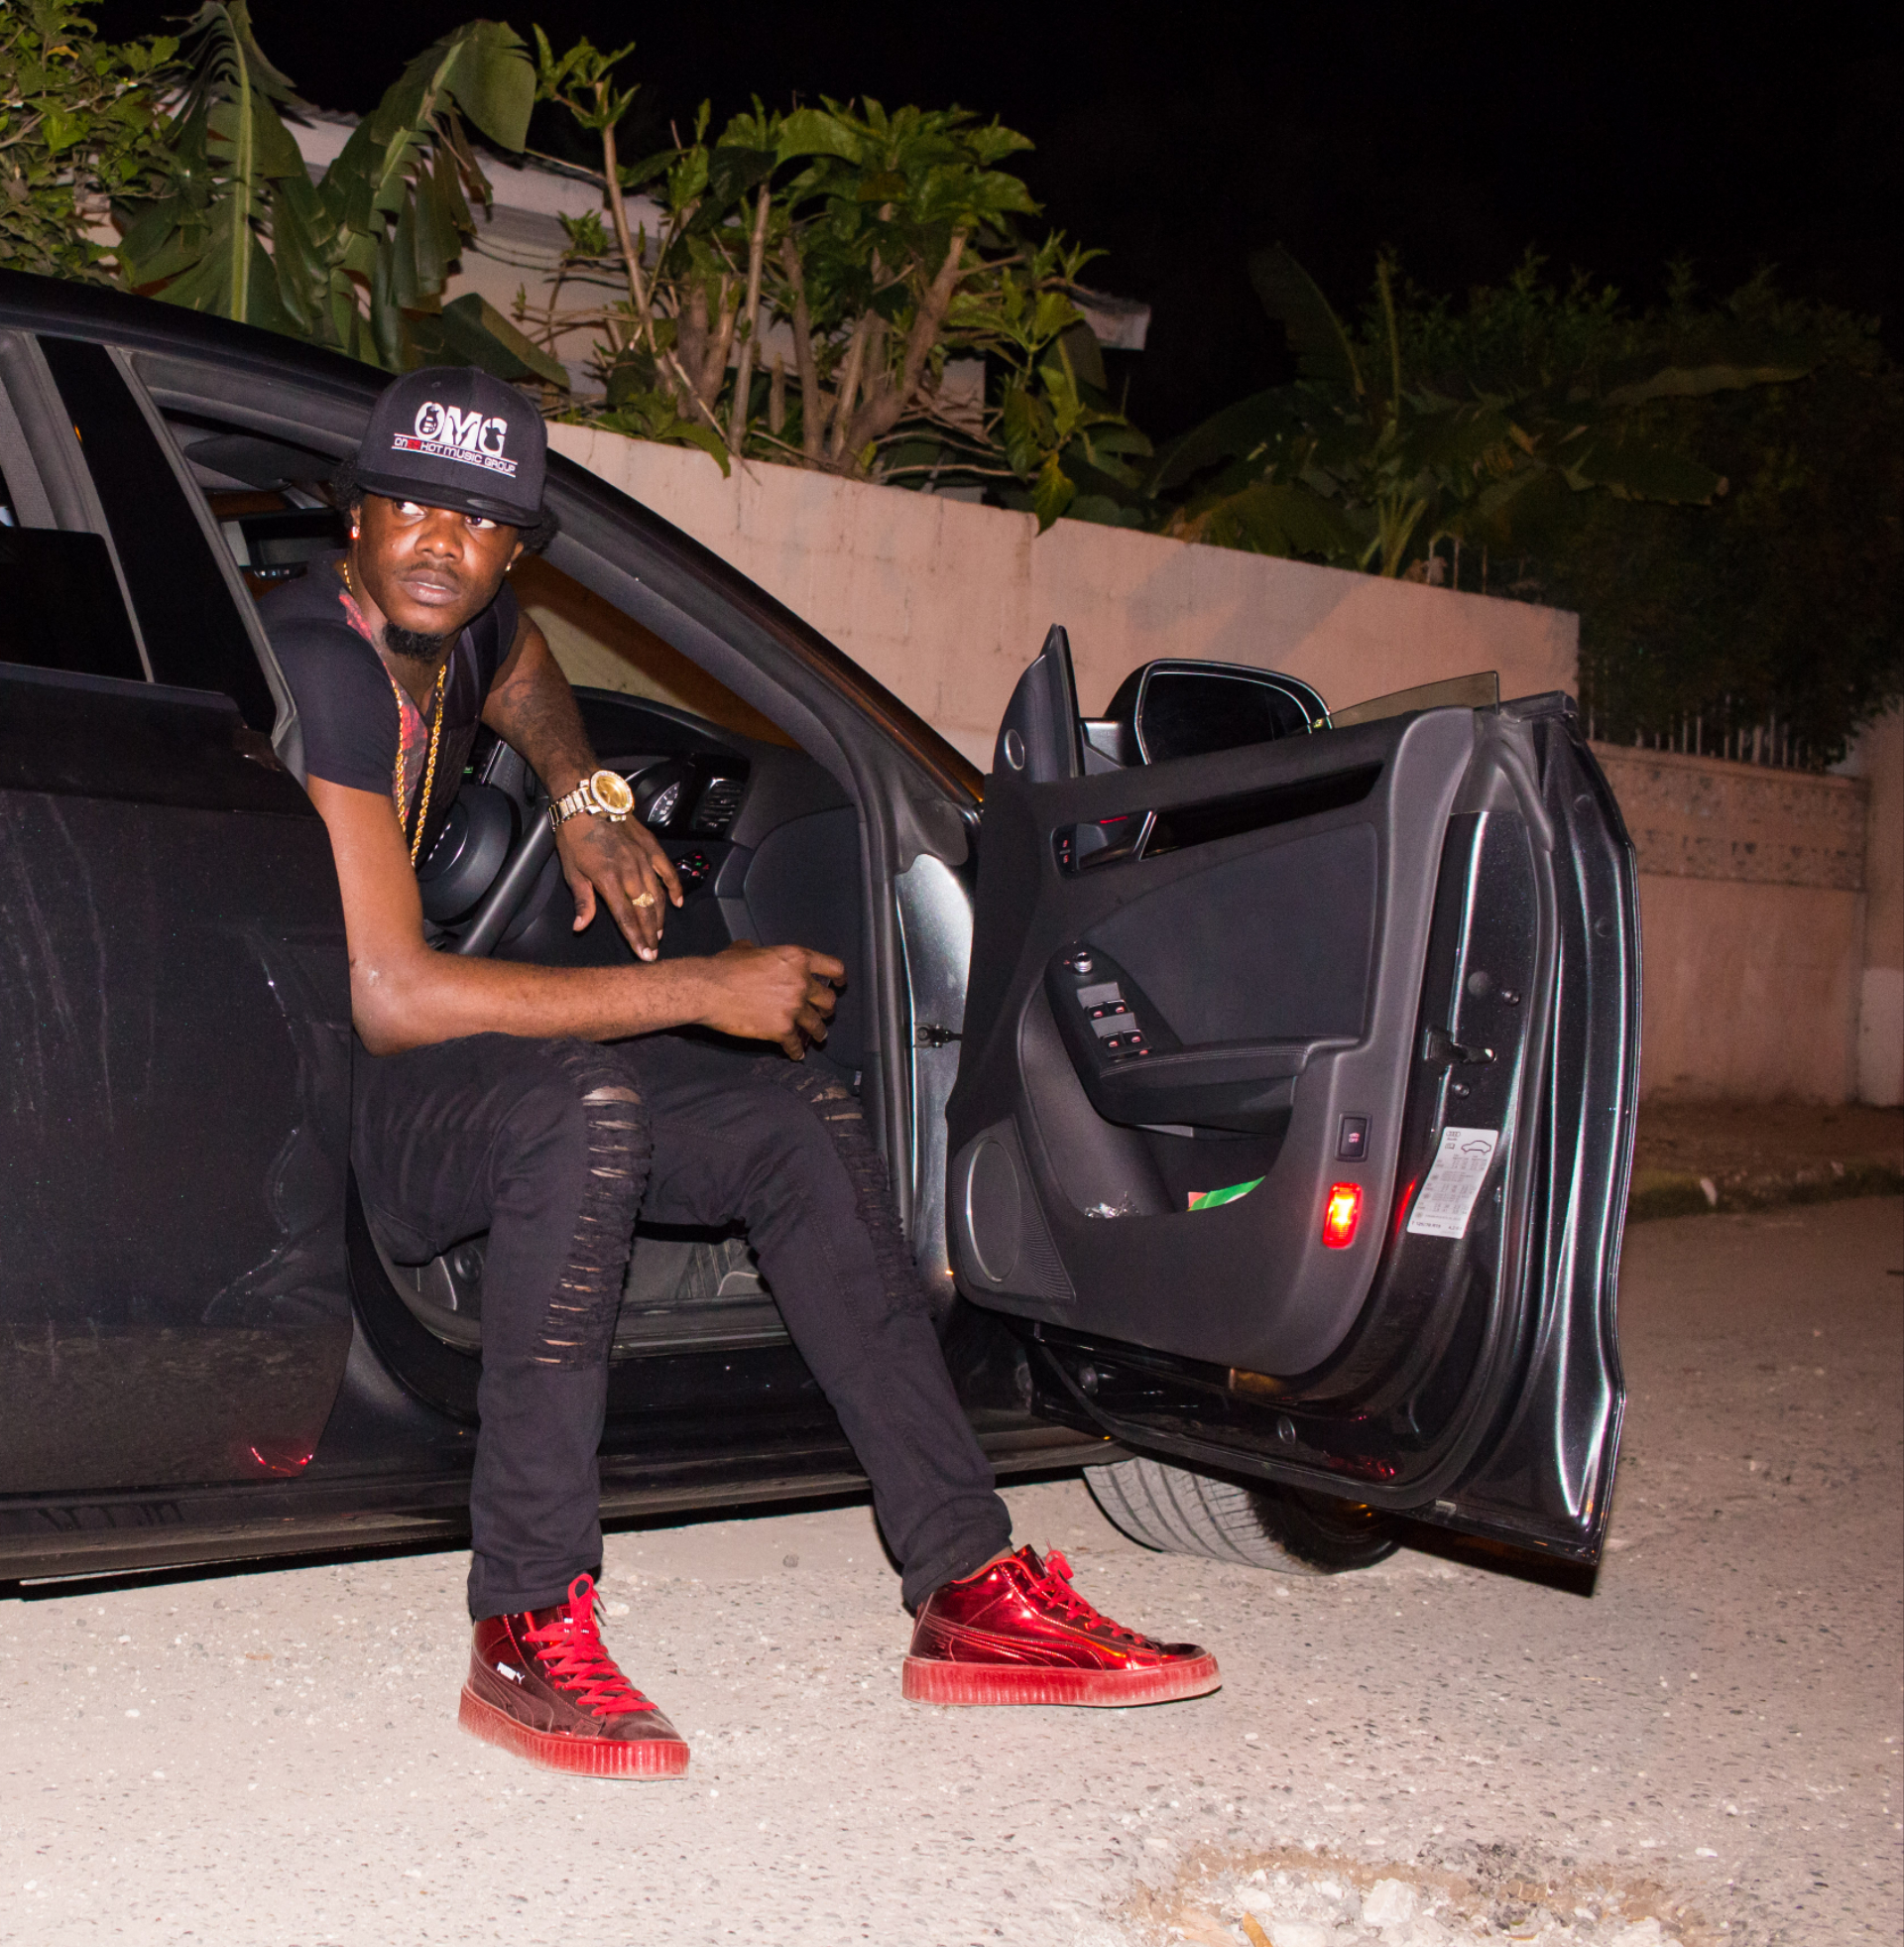 Dancehall artist Giannii sitting in the passenger side of a car